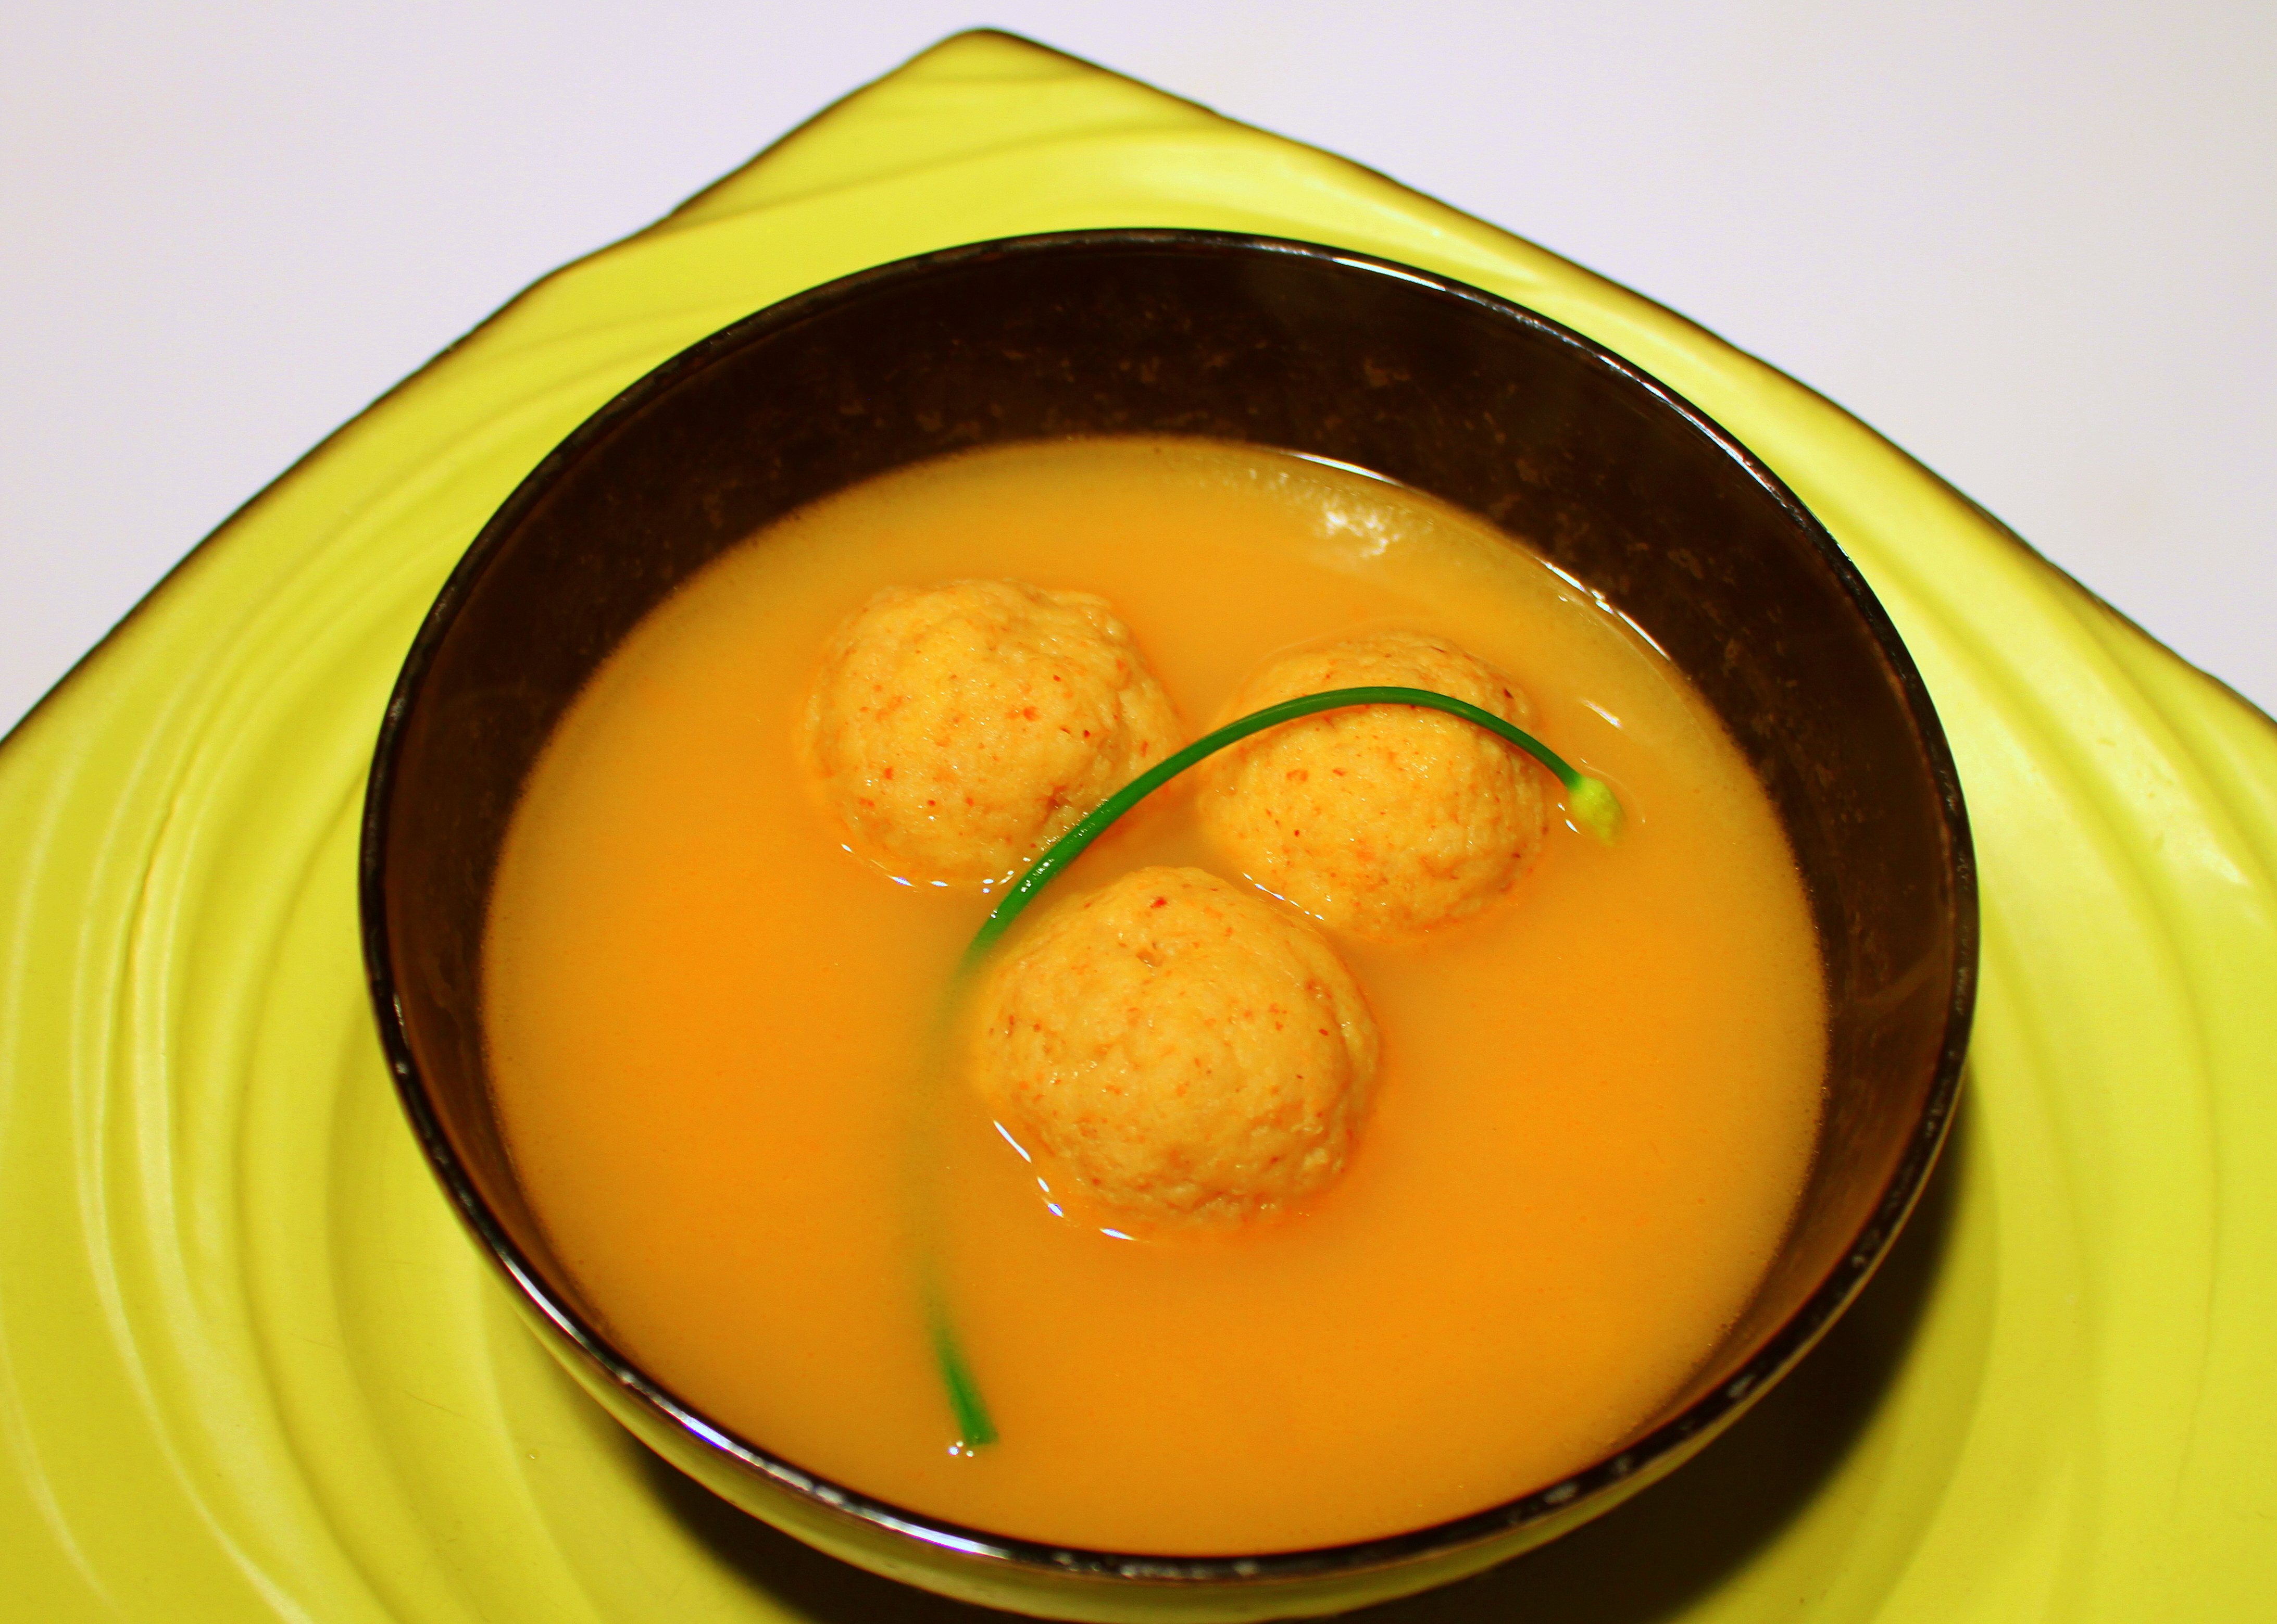 tomato-matzo-ball-soup-with-pickled-garlic-chive-1